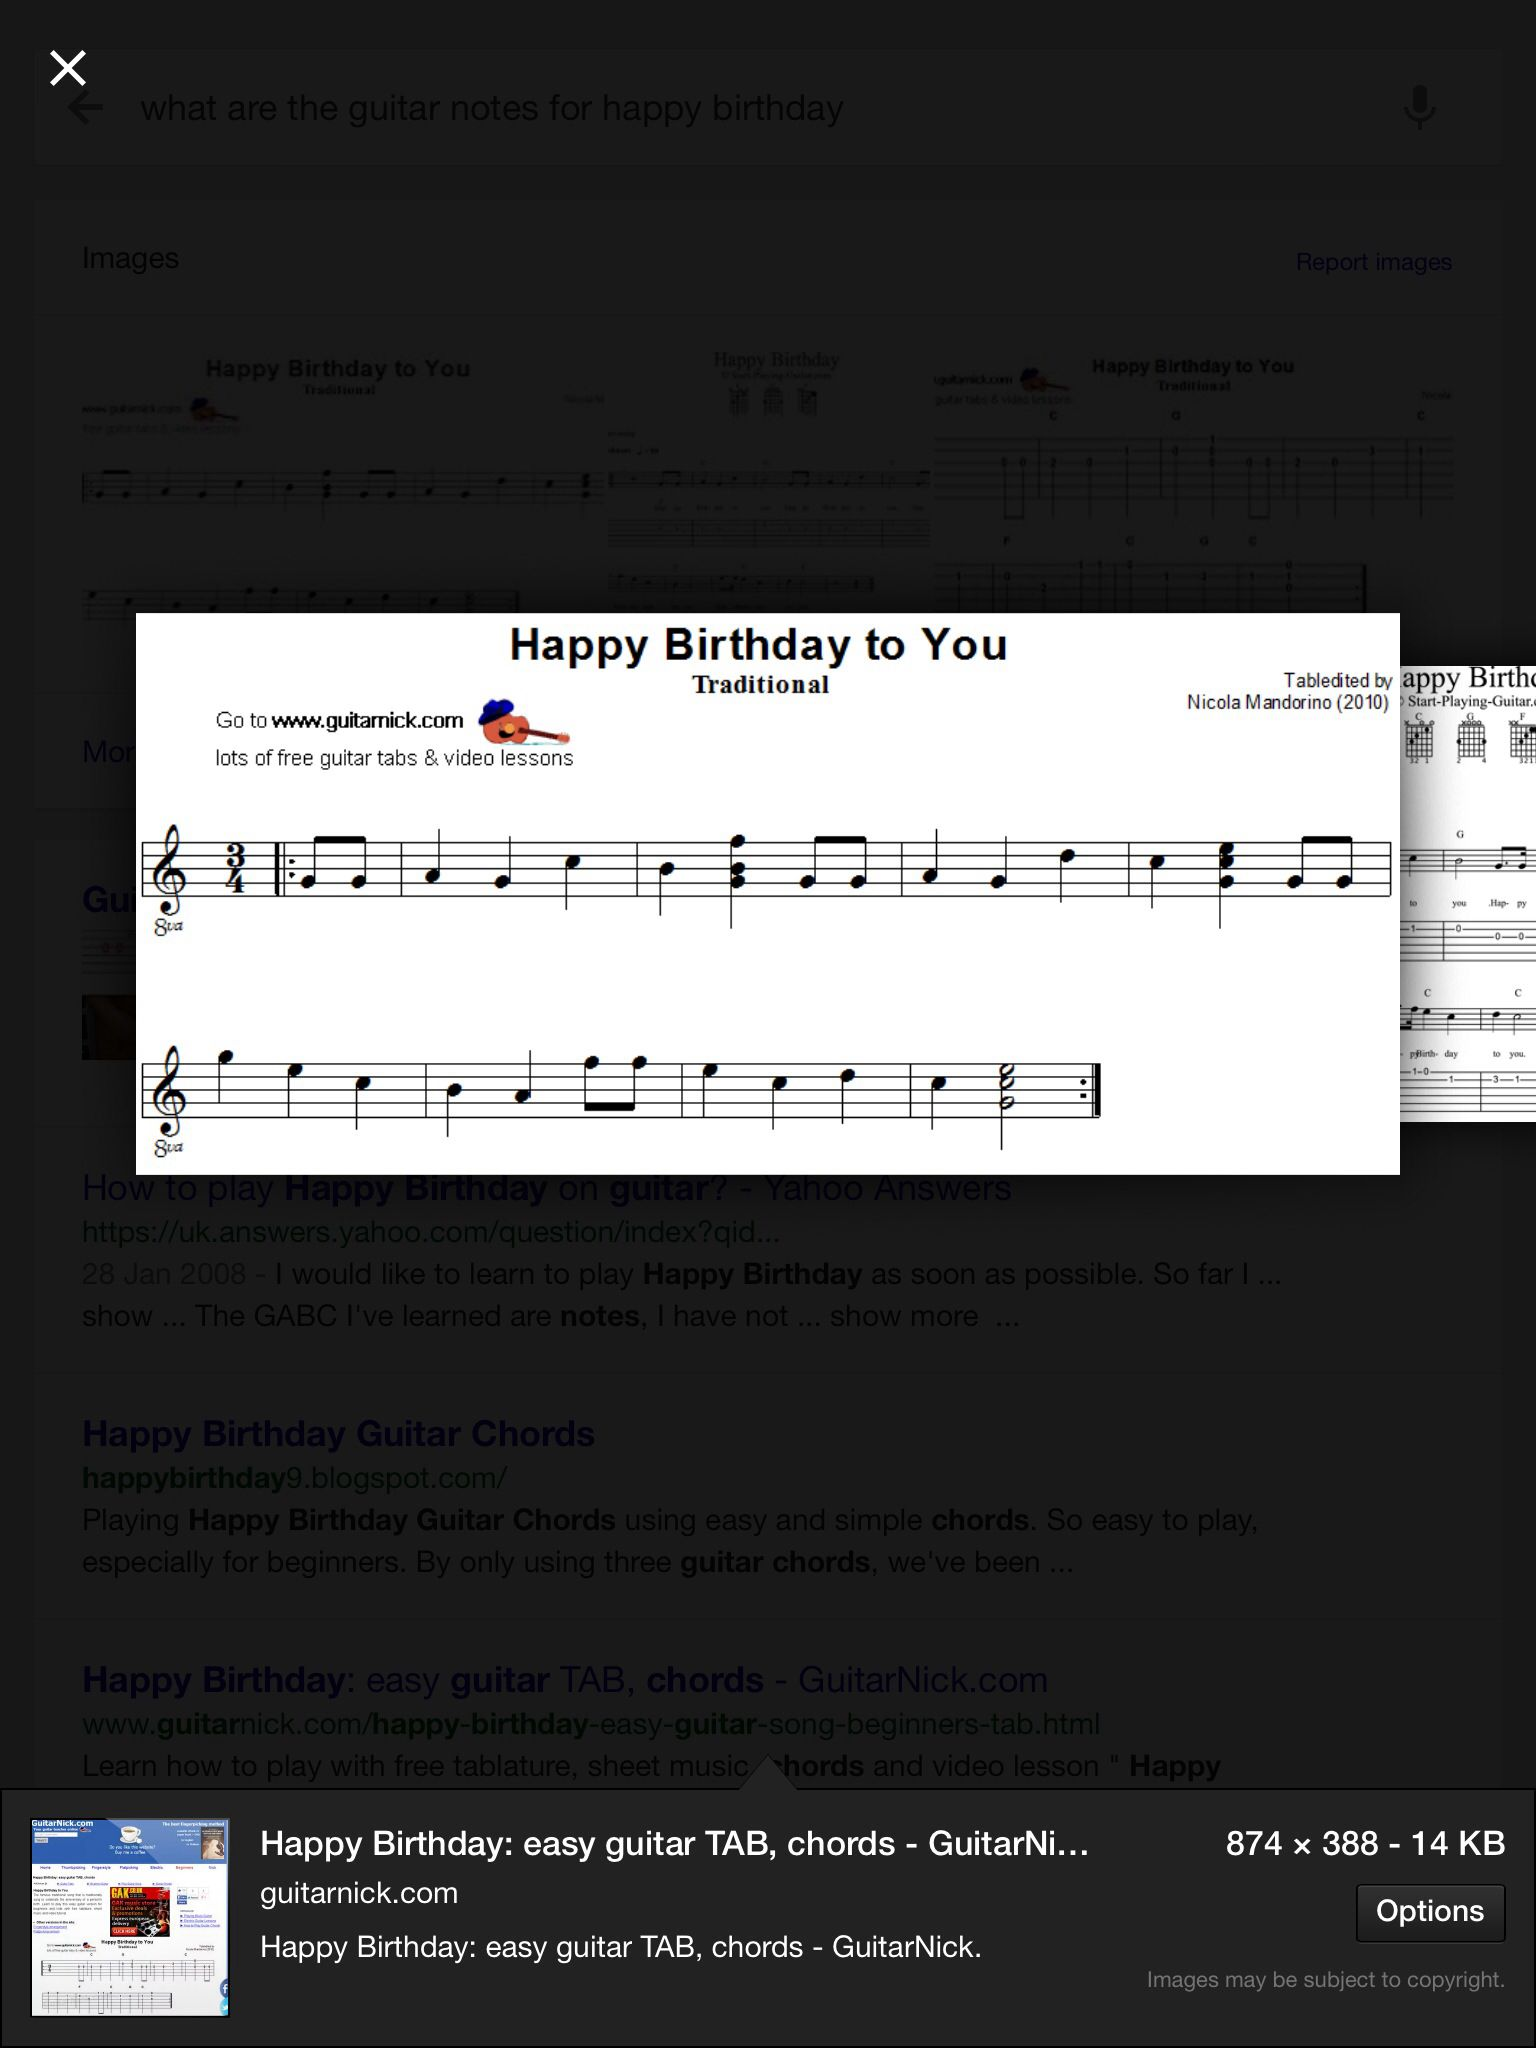 Playing Happy Birthday Guitar Chords Using Easy And Simple